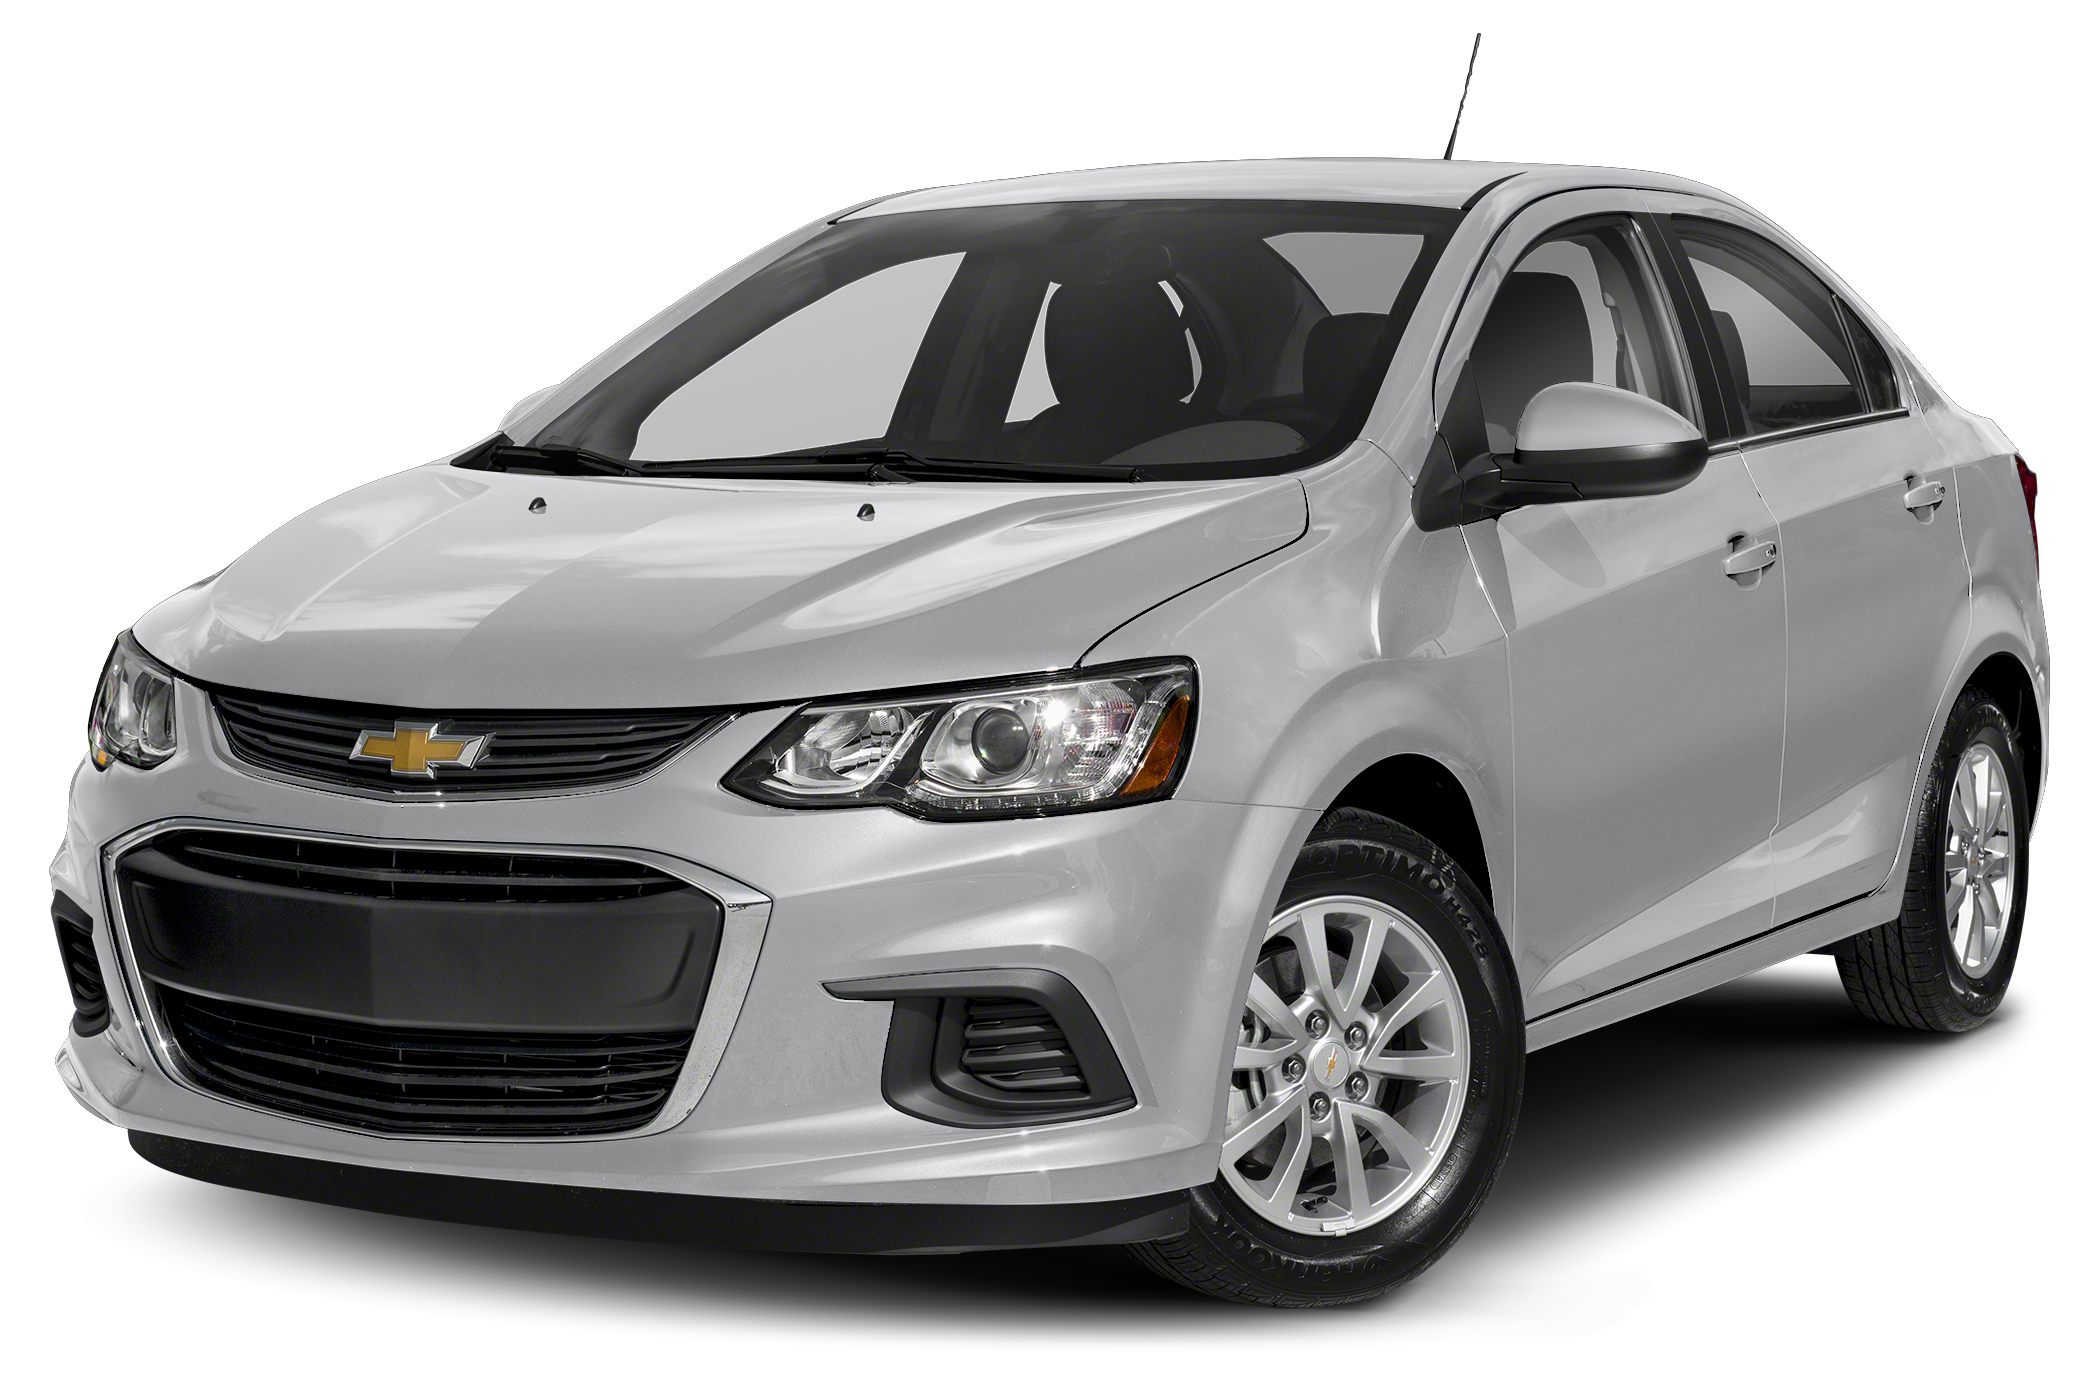 2017 Chevrolet Sonic LS Prior Dealer Loaner Vehicle New Price Silver Ice Metallic 2017 Chevrole